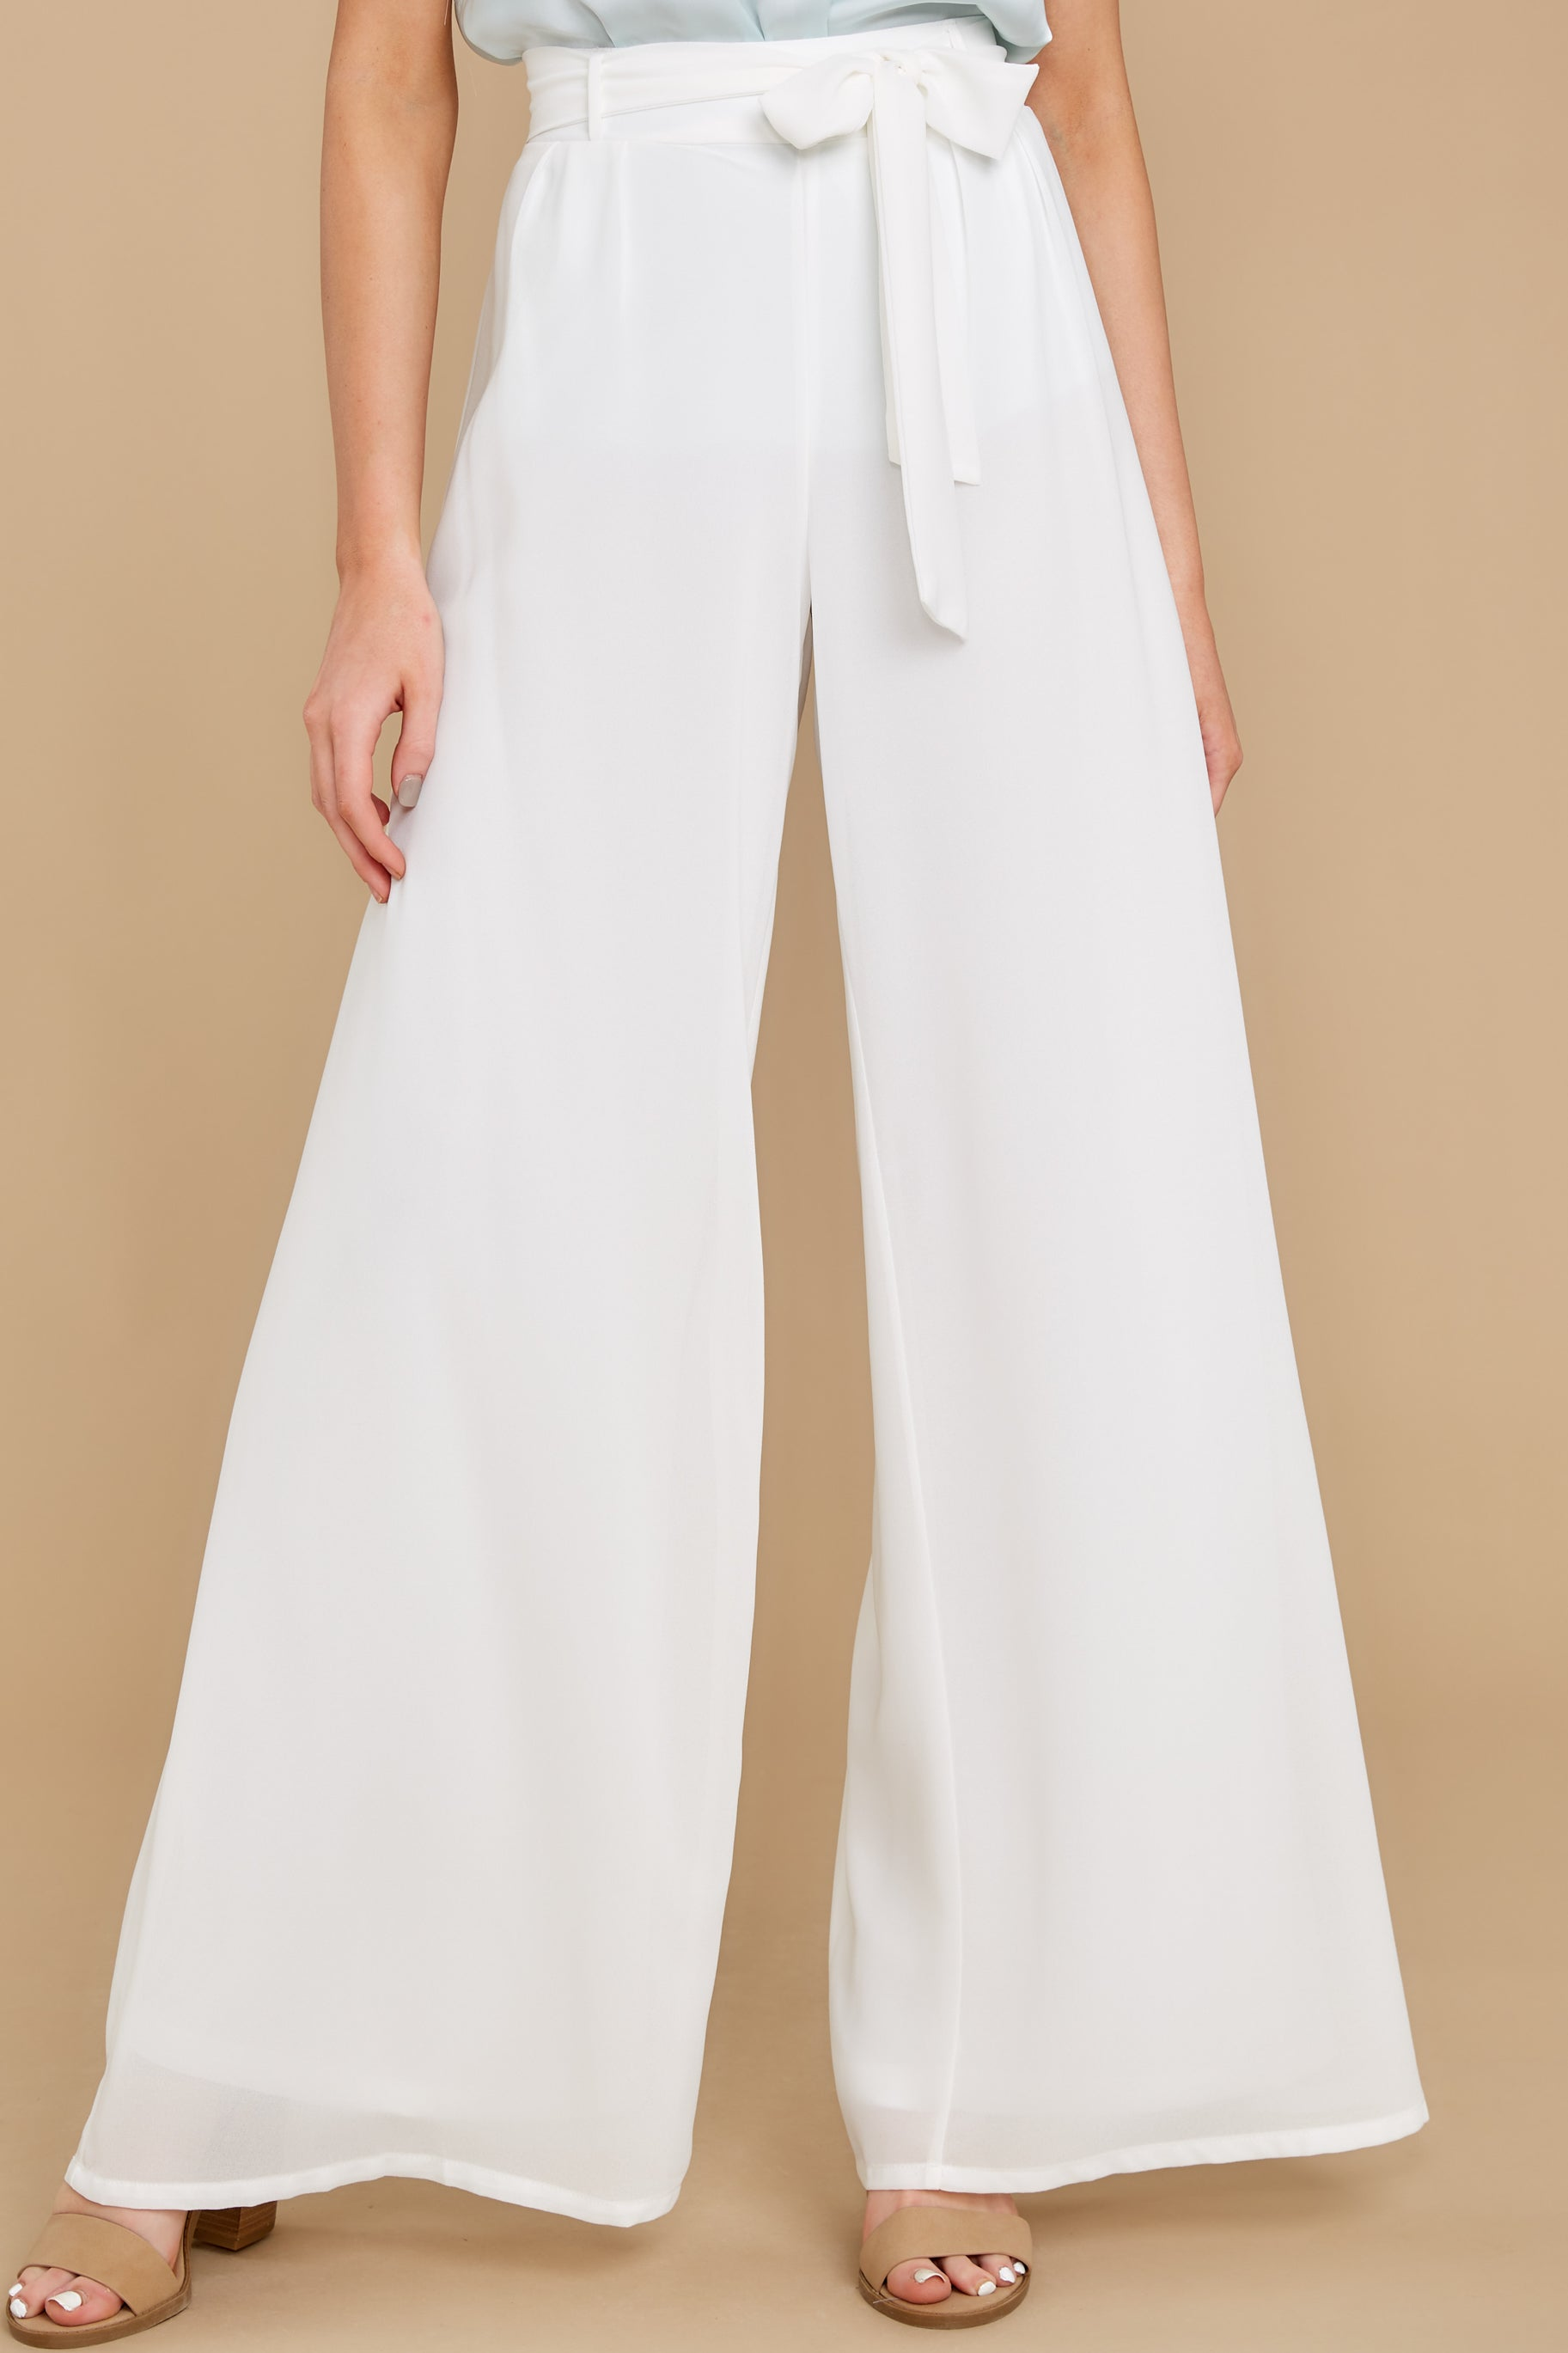 Vintage High Waisted Trousers, Sailor Pants, Jeans Goal Getter Ivory Pants $36.00 AT vintagedancer.com